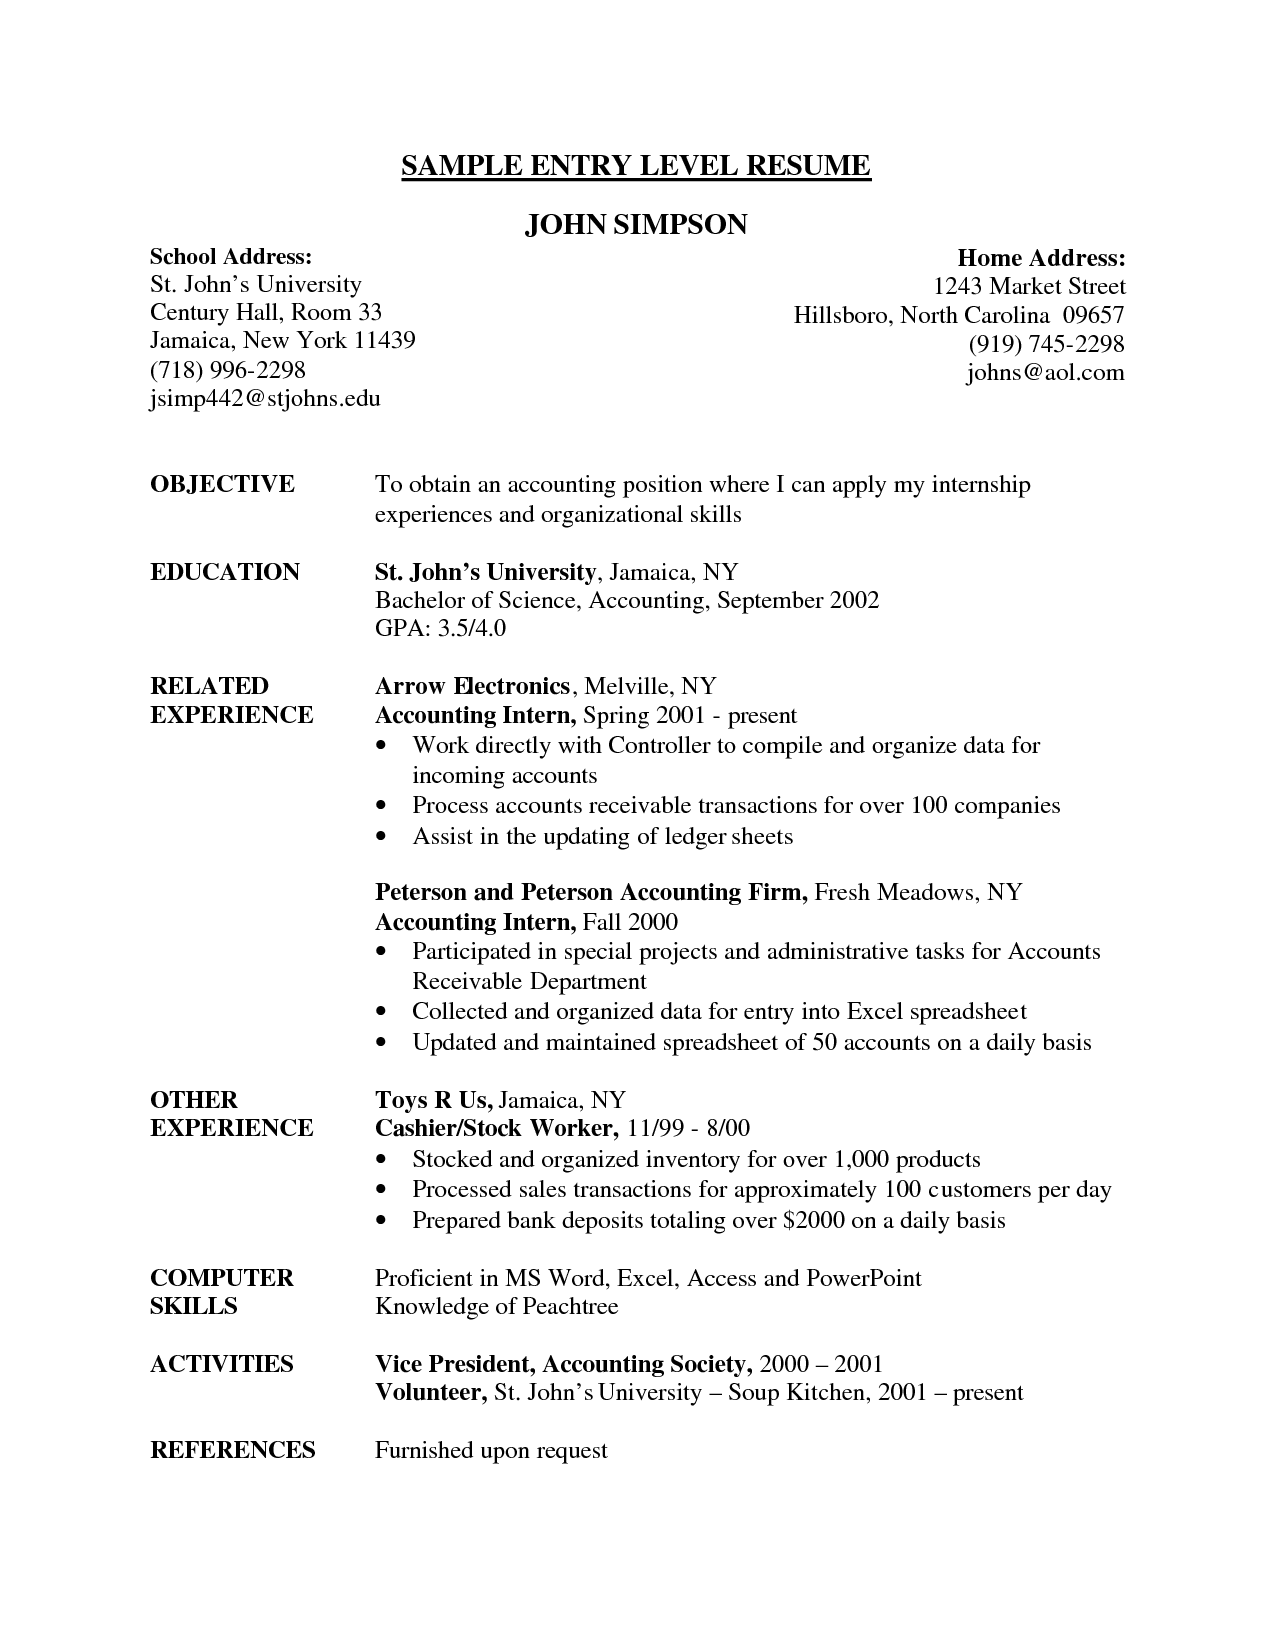 Professional Accounting Resume Templates Free Entry Level Resumes Samplebusinessresume